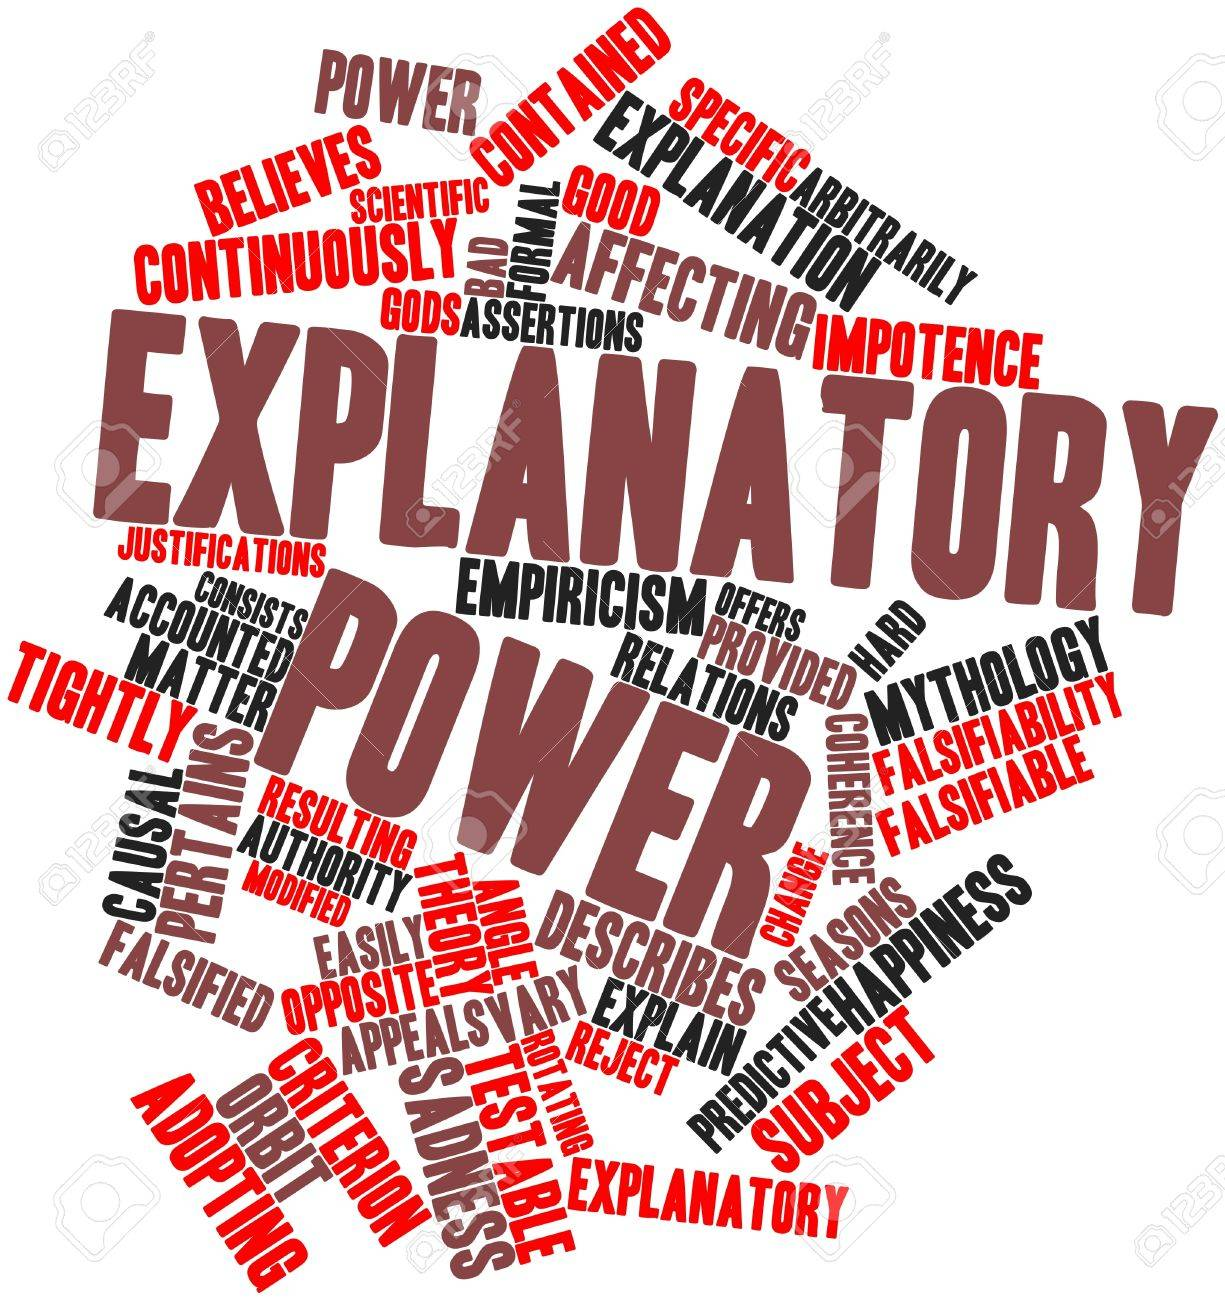 Image result for explanatory power